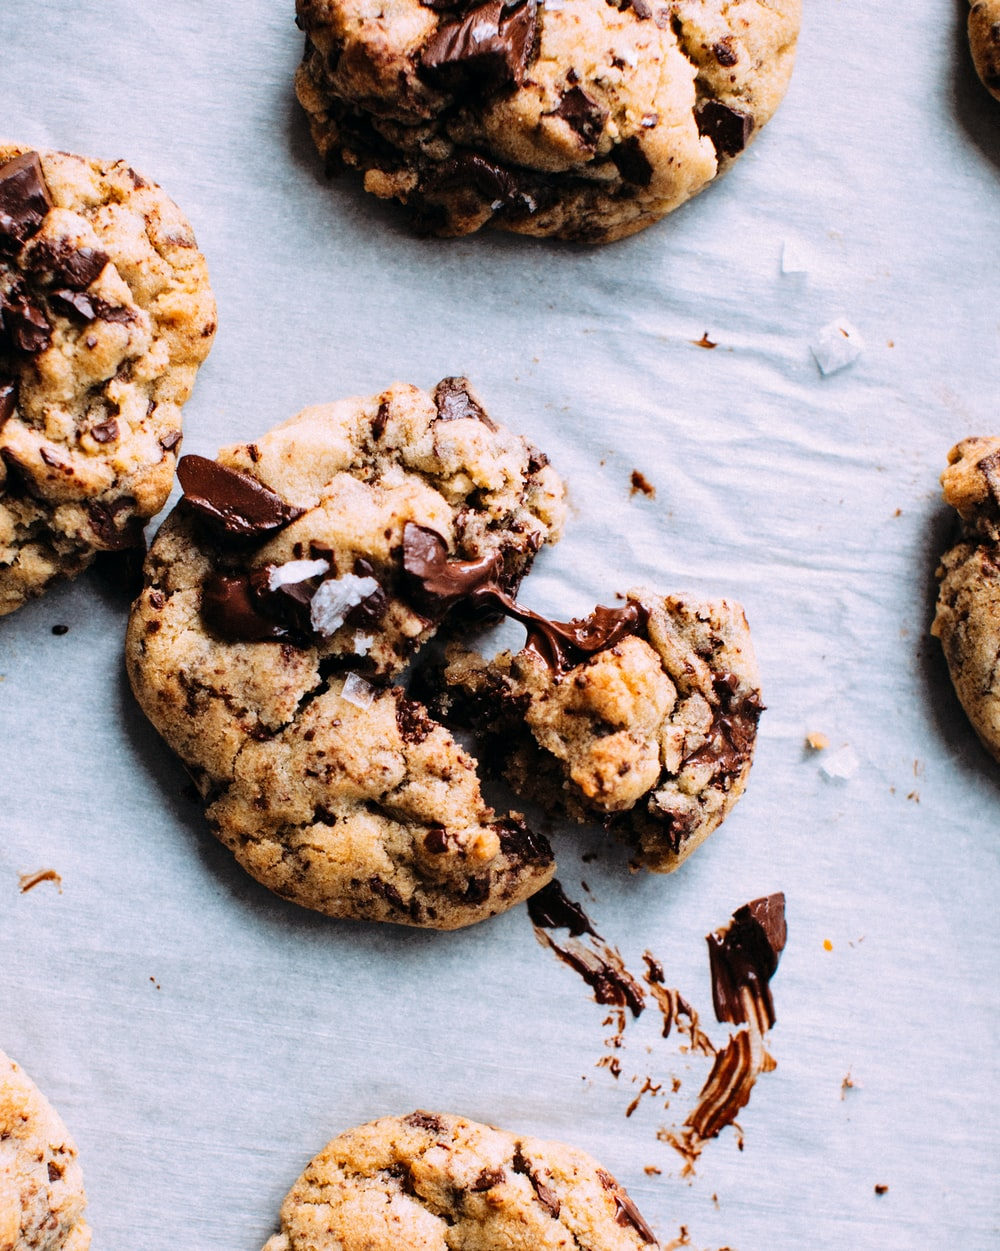 close-up photo of baked cookies